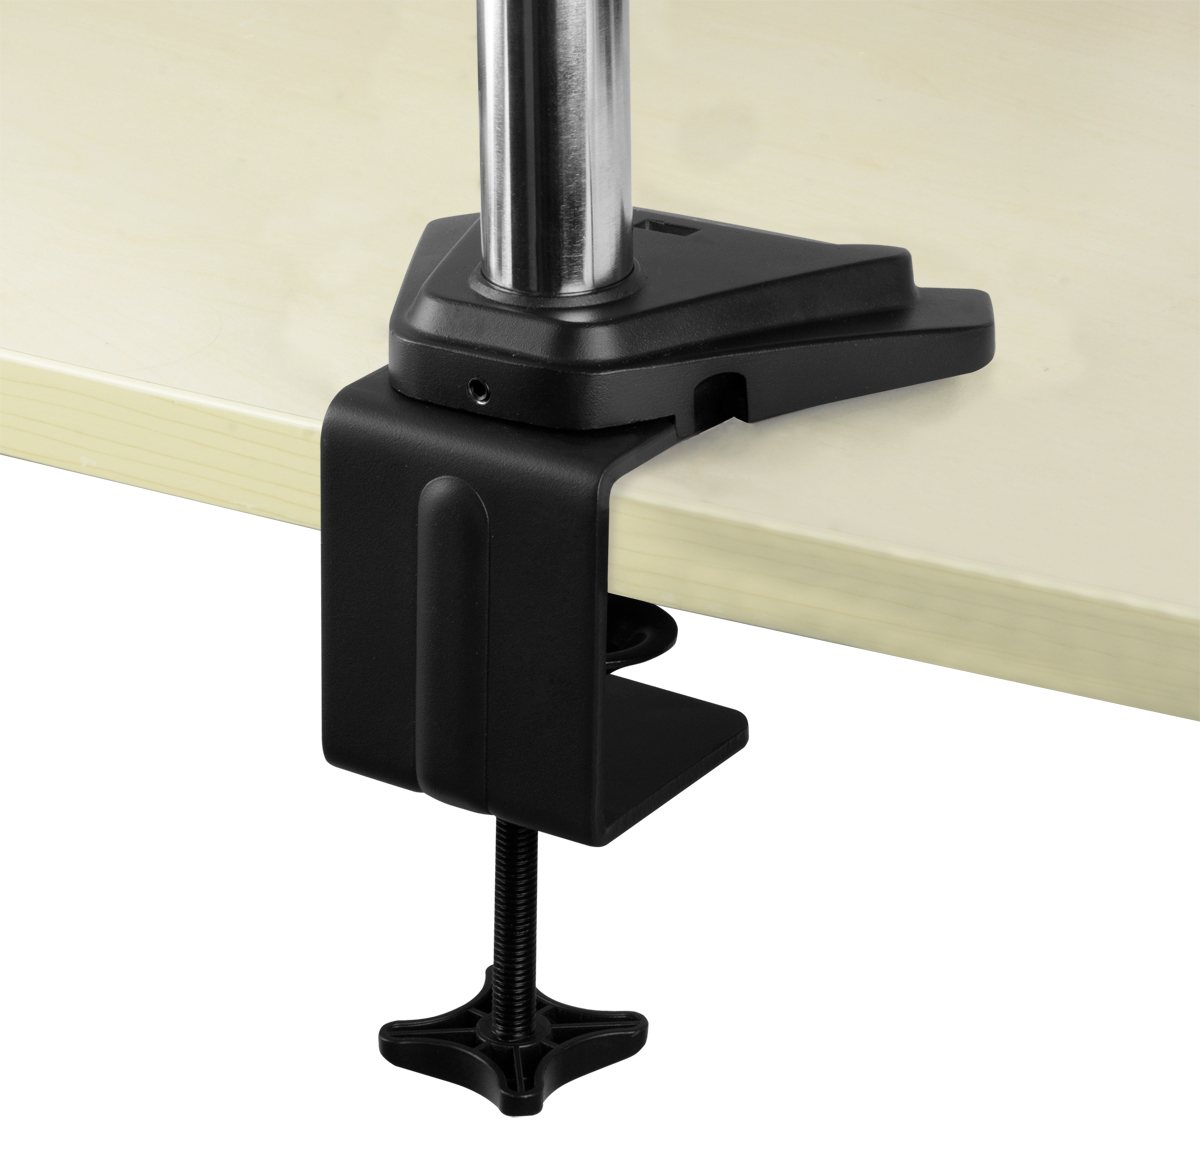 Desk Mount Monitor Arm with SuperSpeed USB Hub ARCTIC Z1 Pro (Gen 3) Detail View Table Mounting Clamp Open